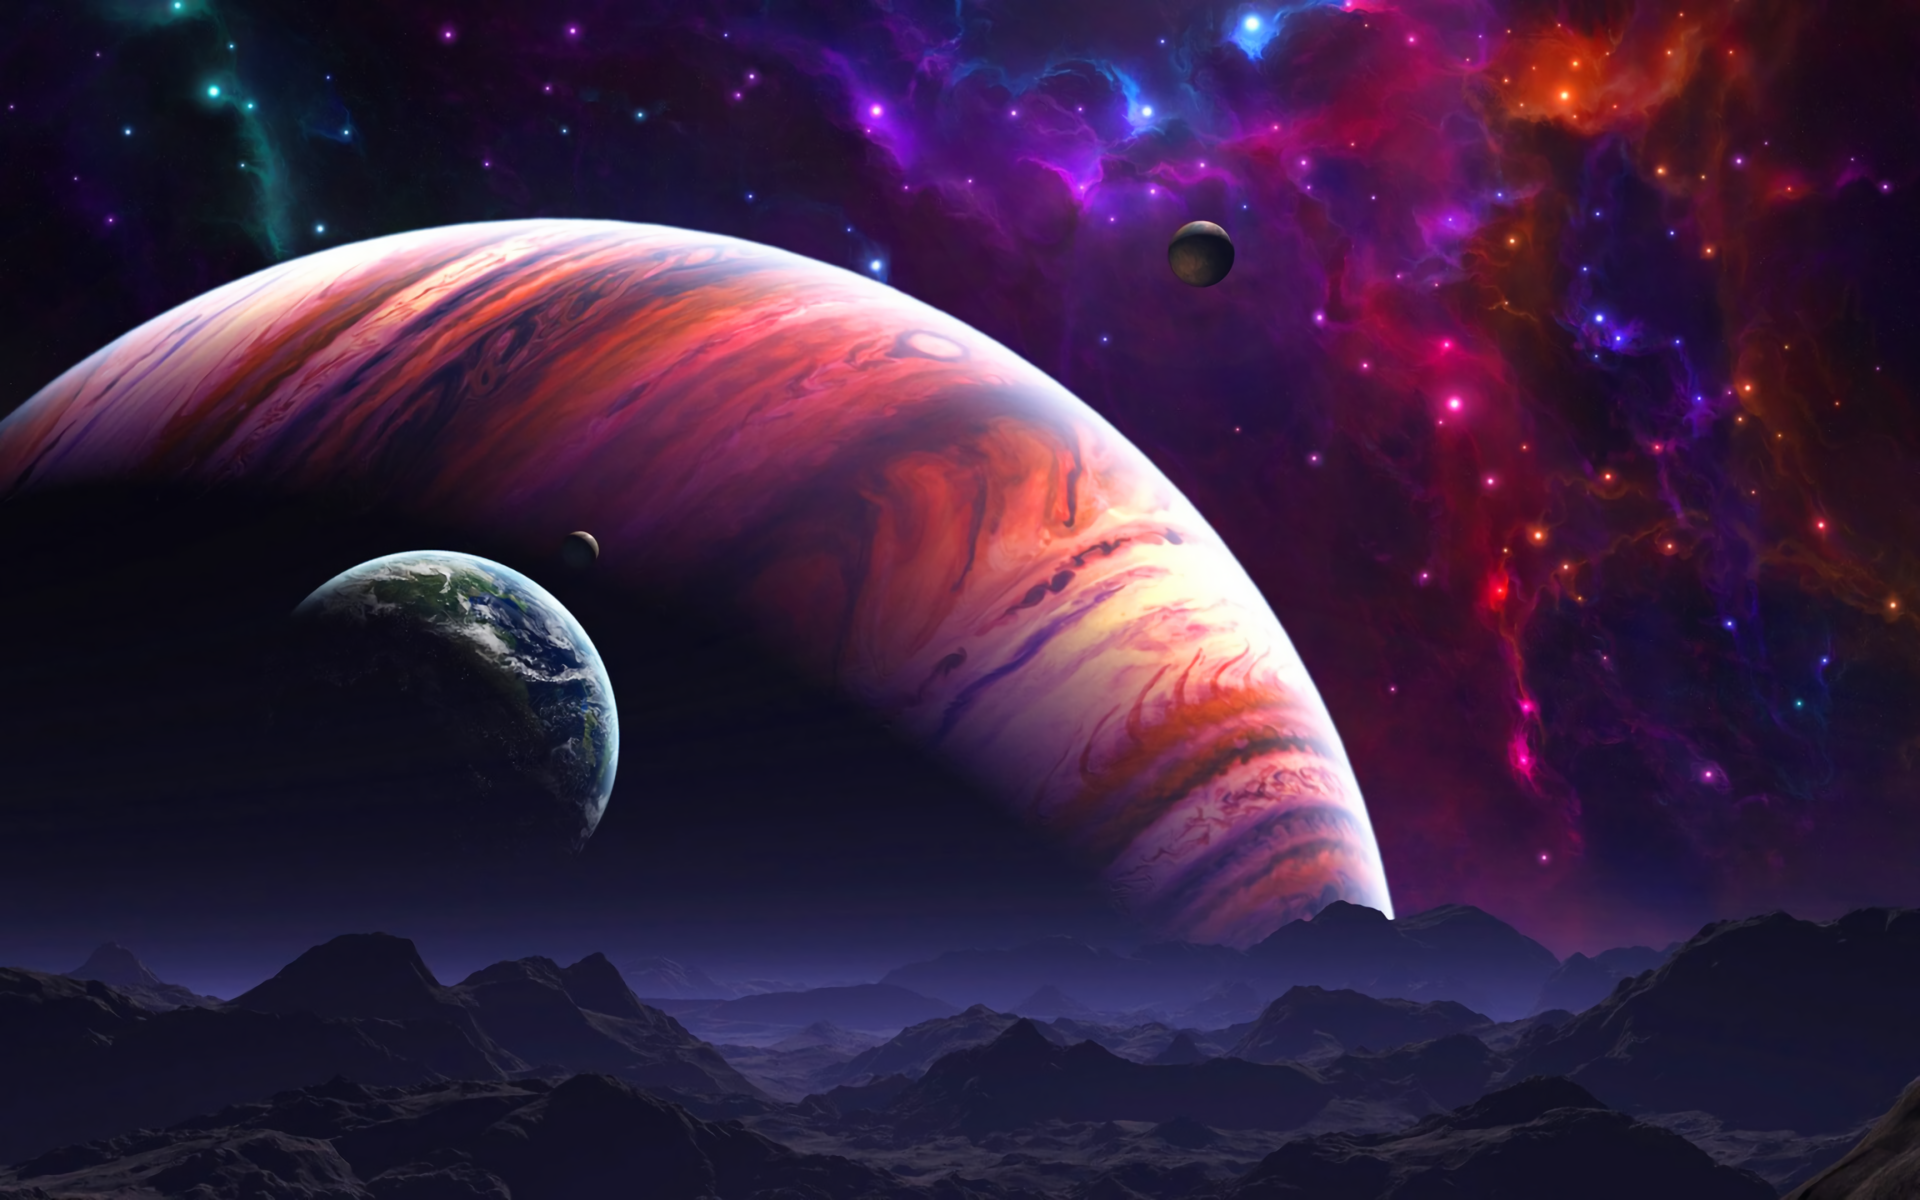 Planets in space hd wallpaper hintergrund 1920x1200 - Space wallpaper 3840x1200 ...